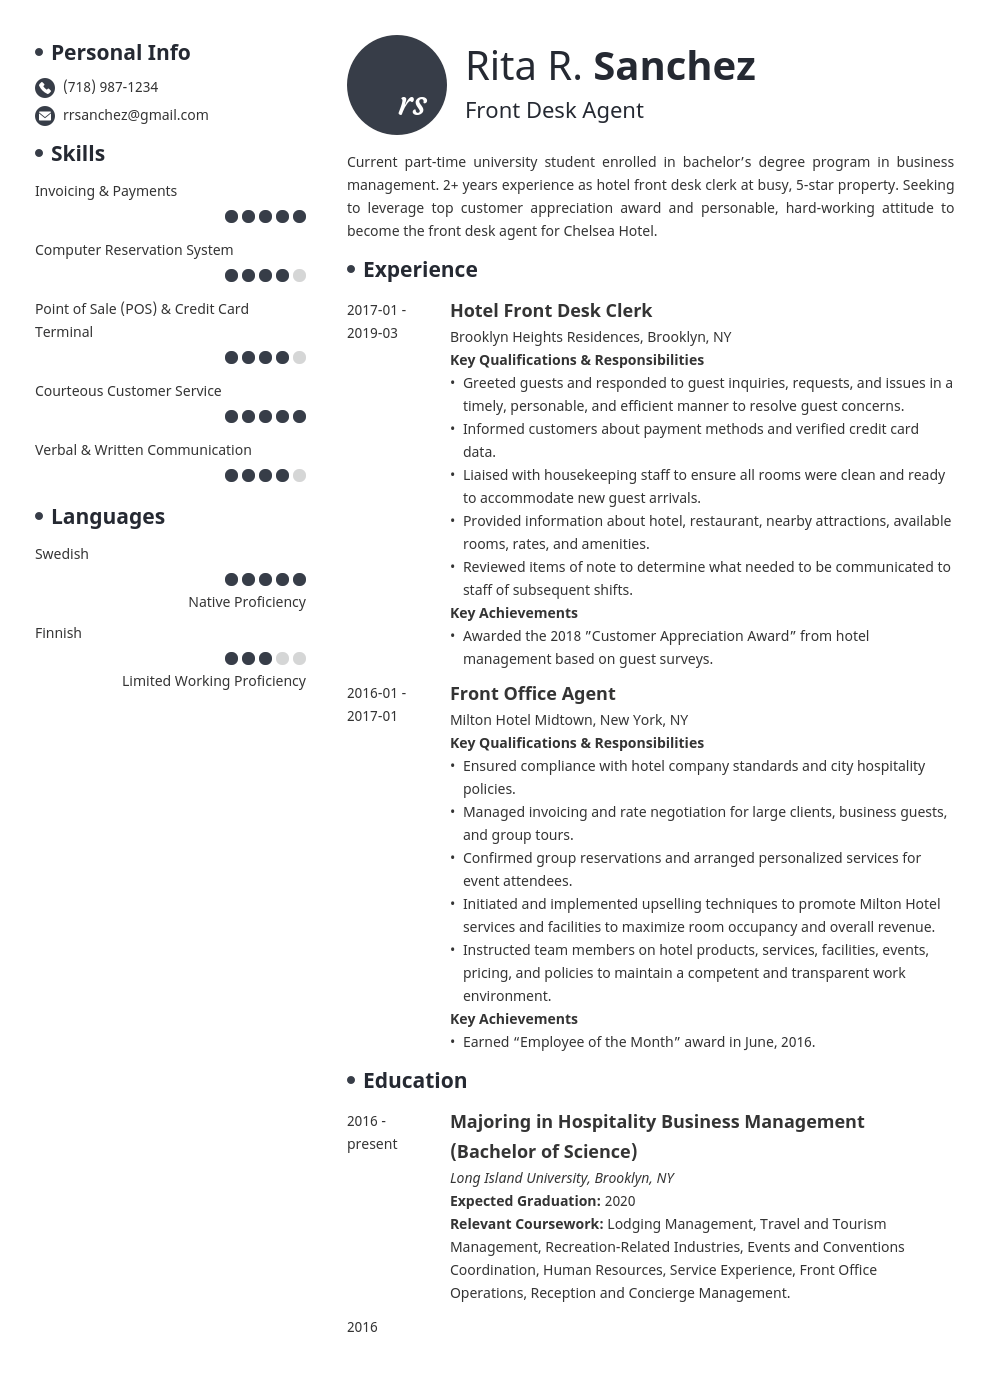 front desk resume example template initials